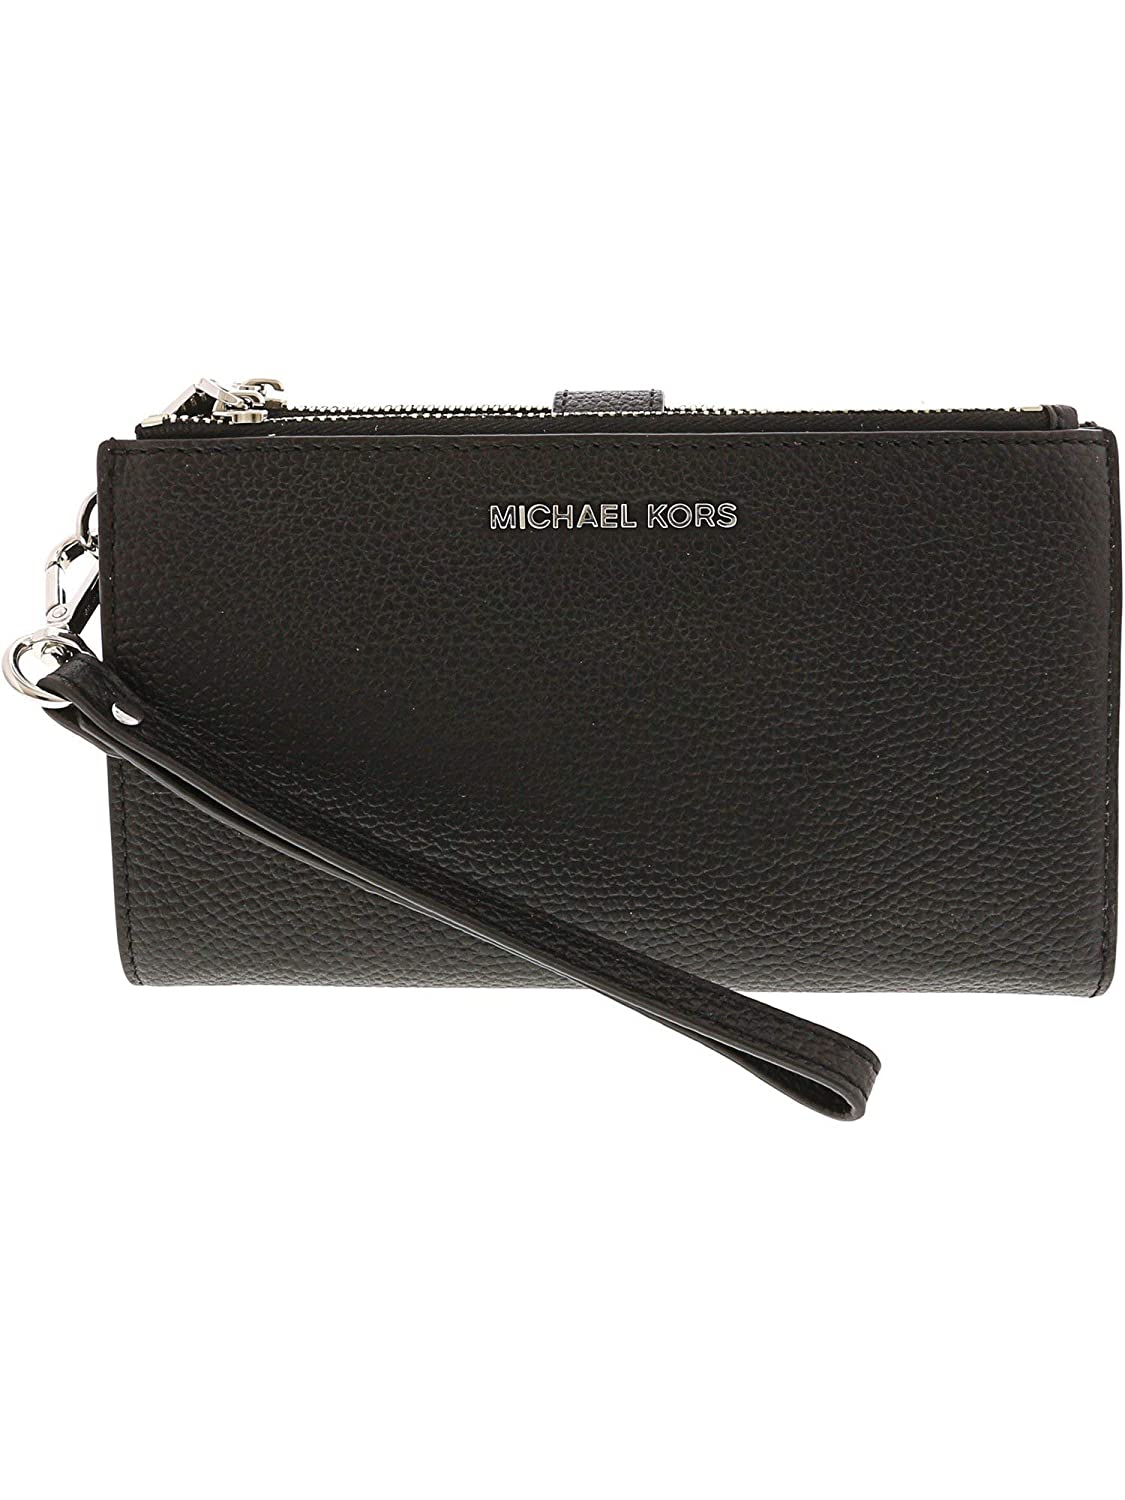 046c88064e7f Amazon.com: Michael Kors Women's Michael Kors Adele Tumbled Black Leather  Purse Black: Michael Kors: shophydra